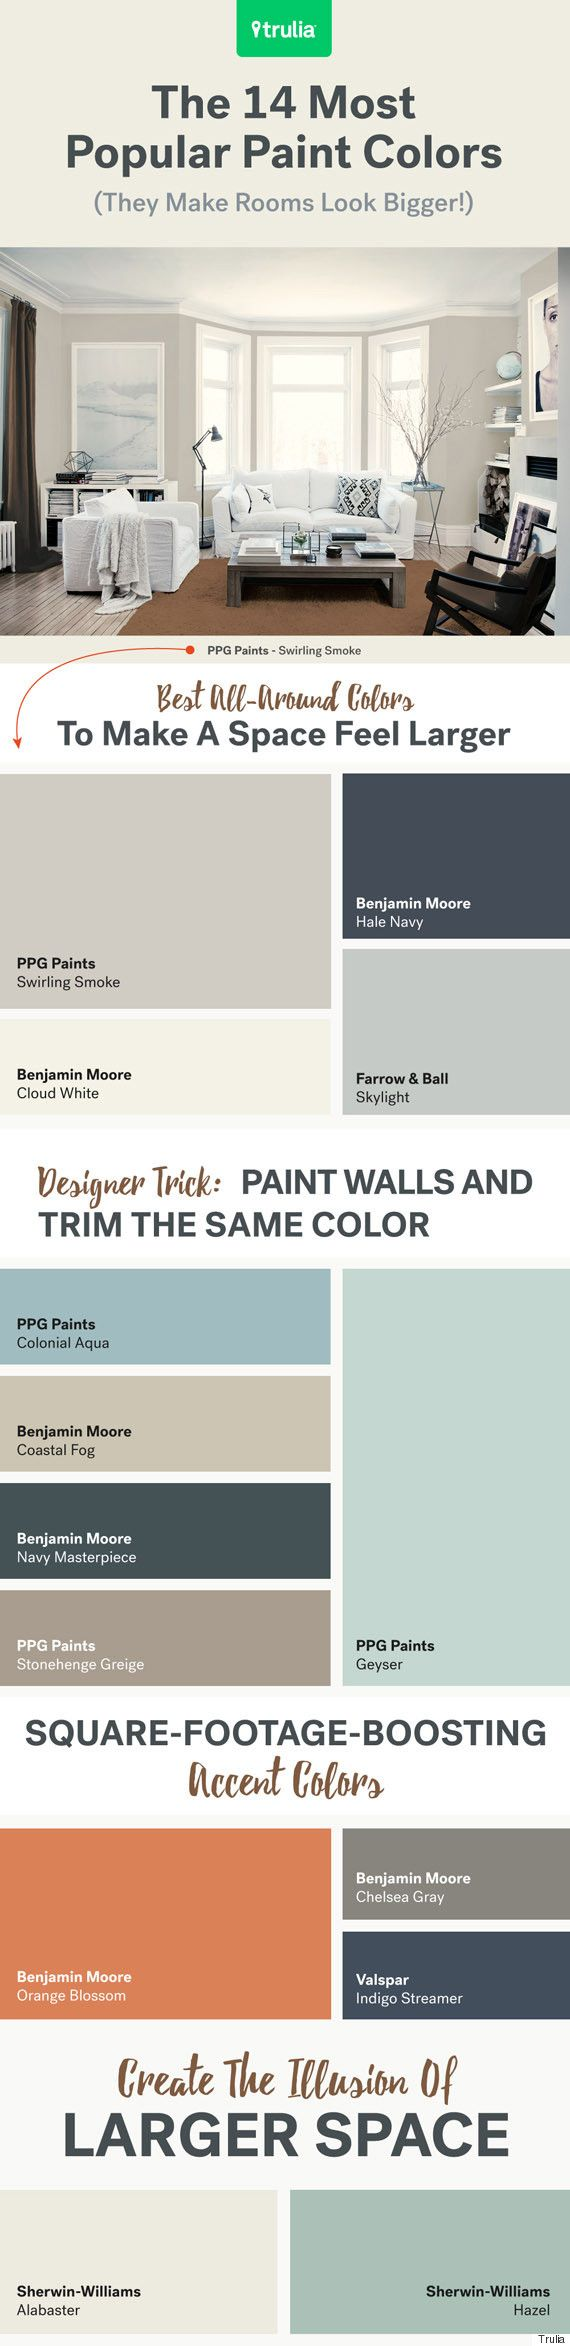 Living Room Pinterest Paint Color Ideas 1000 ideas about interior paint colors on pinterest the 14 most popular they make a room look bigger